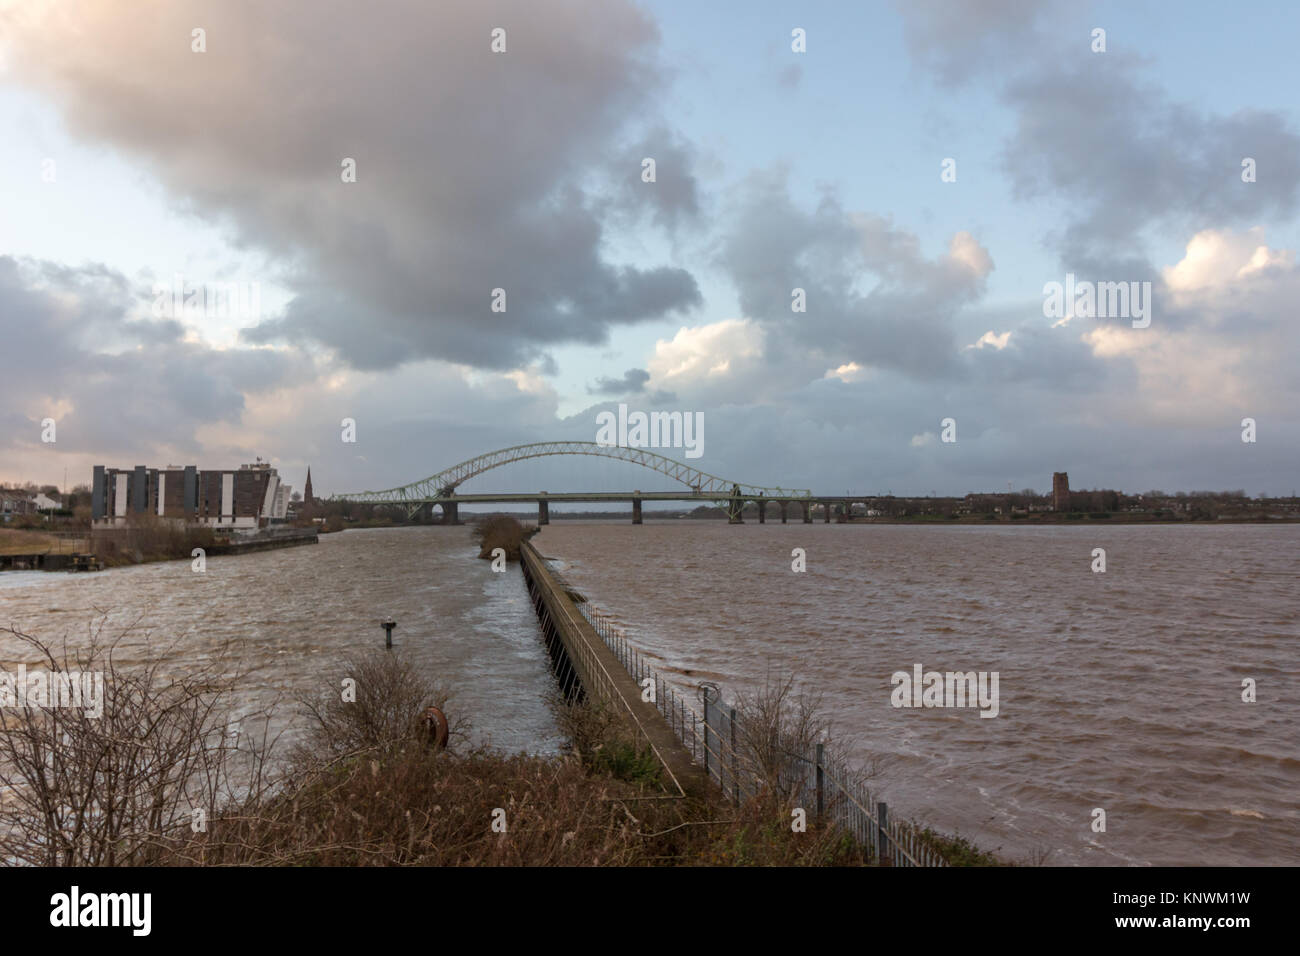 Looking out across the River Mersey at the old Runcorn Silver Jubilee Bridge and the new Mersey Gateway Bridge Stock Photo